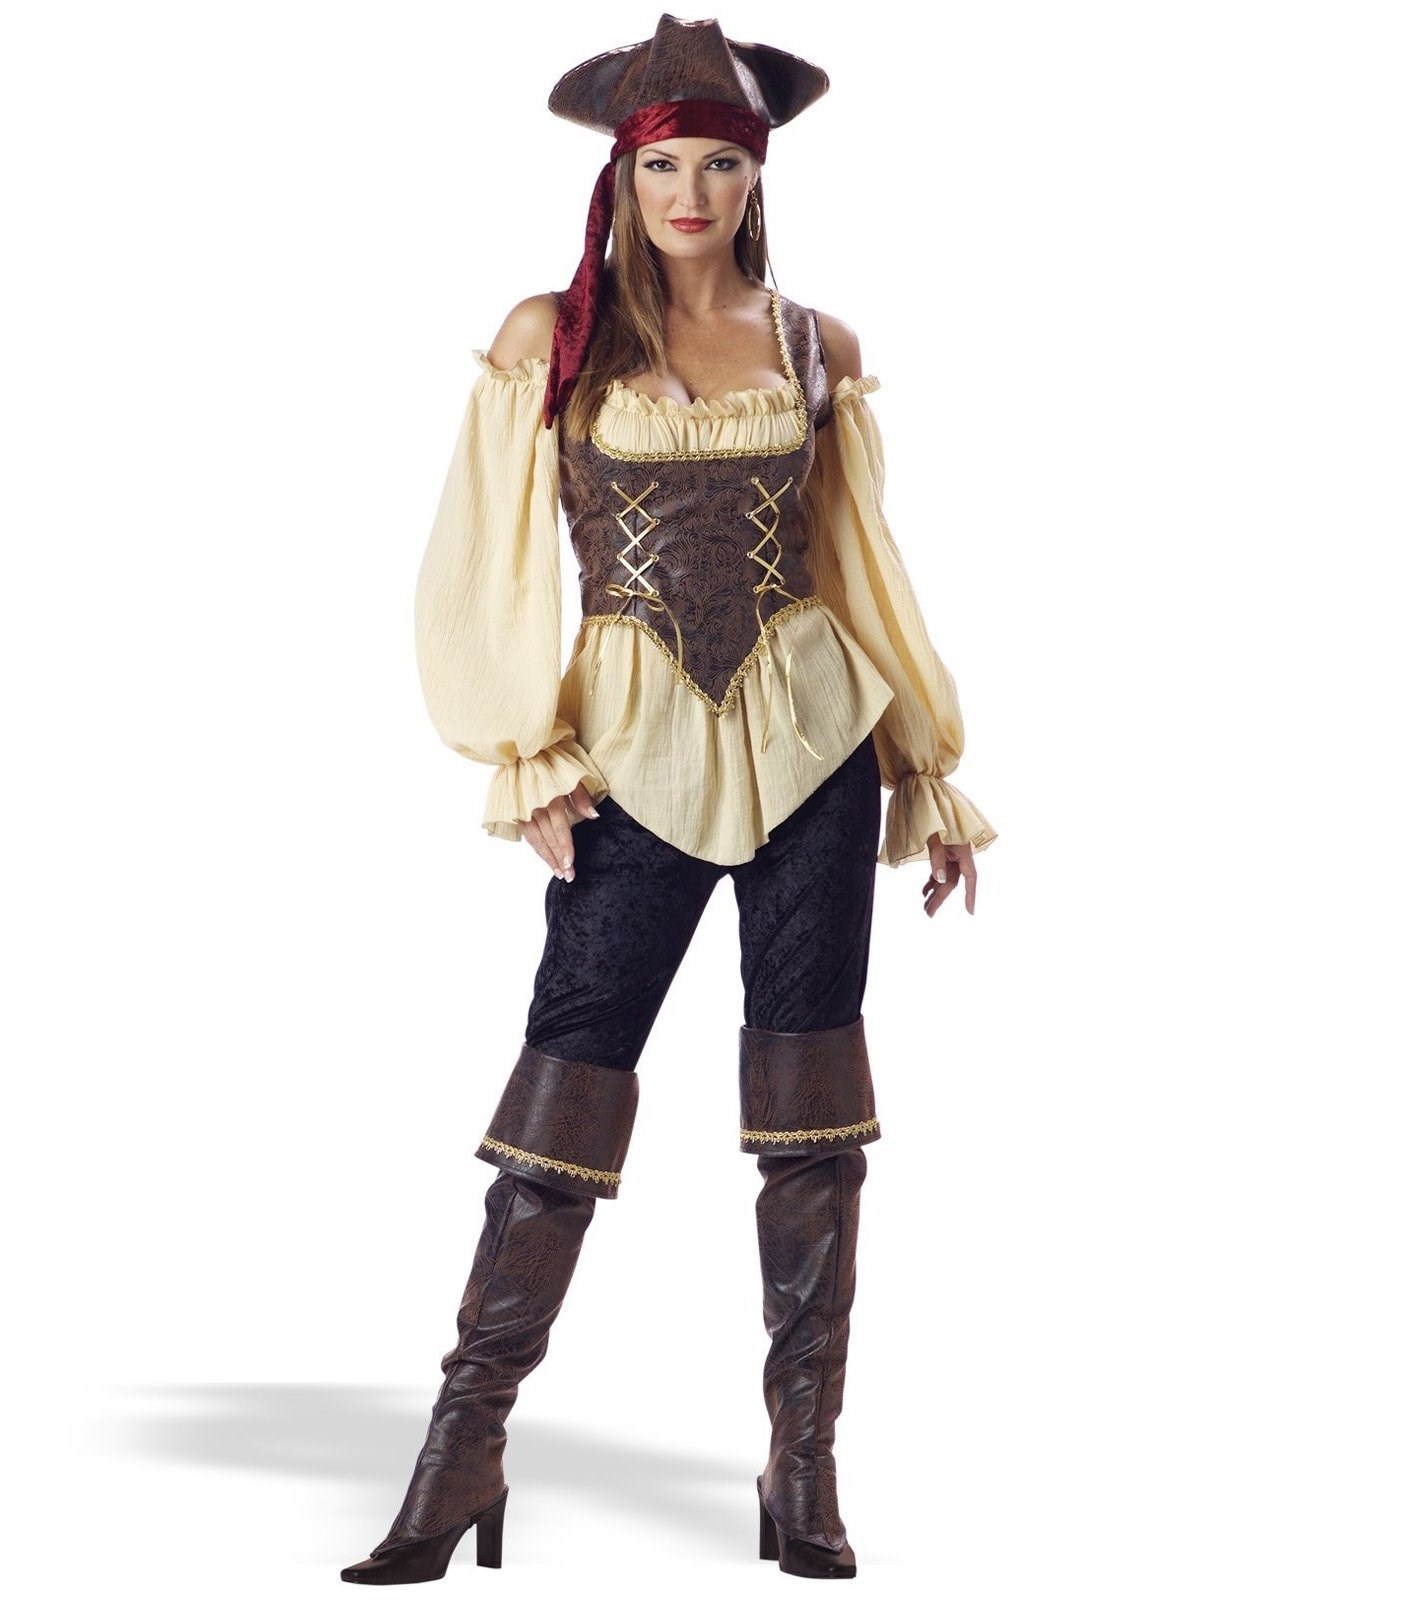 its no secret that captain jack sparrow is one of the all time popular pirate costumes for men pirates of the caribbean costumes have been huge ever since - Halloween Pirate Costume Ideas